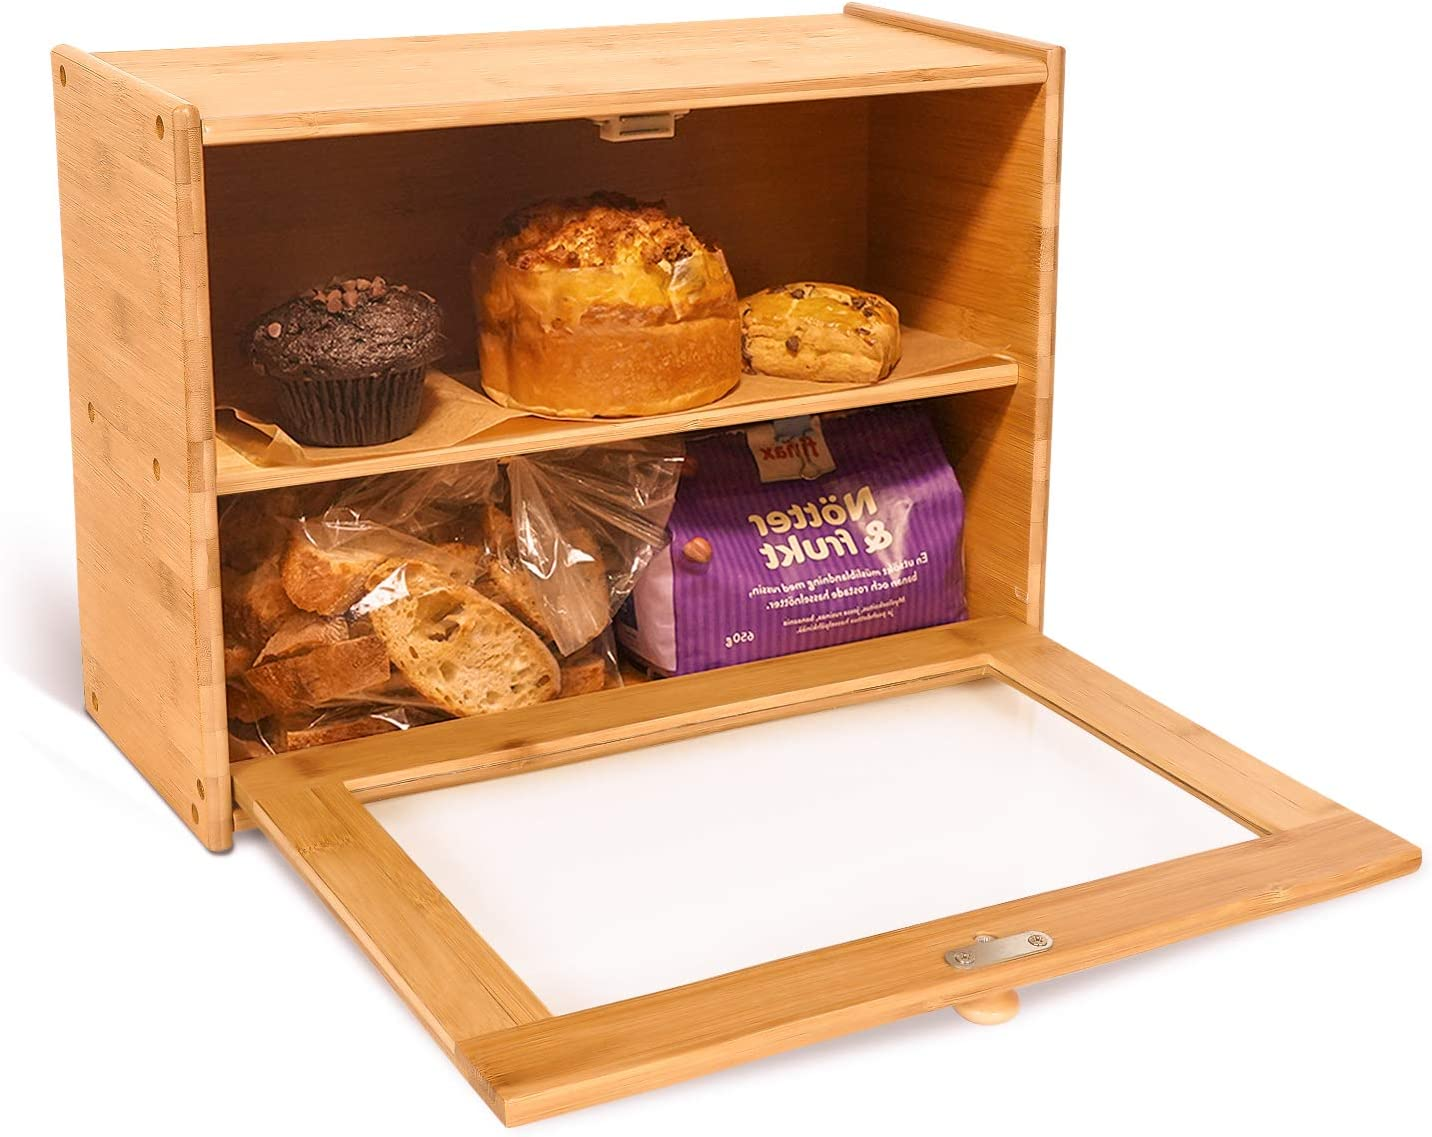 "Goodpick 2-Layer Bamboo Bread Box 15"" x 11"" x 6"" - Bread Storage Bin on Countertop Shelf - Bread box for Kitchen Counter with Transparent Window, Storage Basket for Egg Tart, Bagels, Muffins"